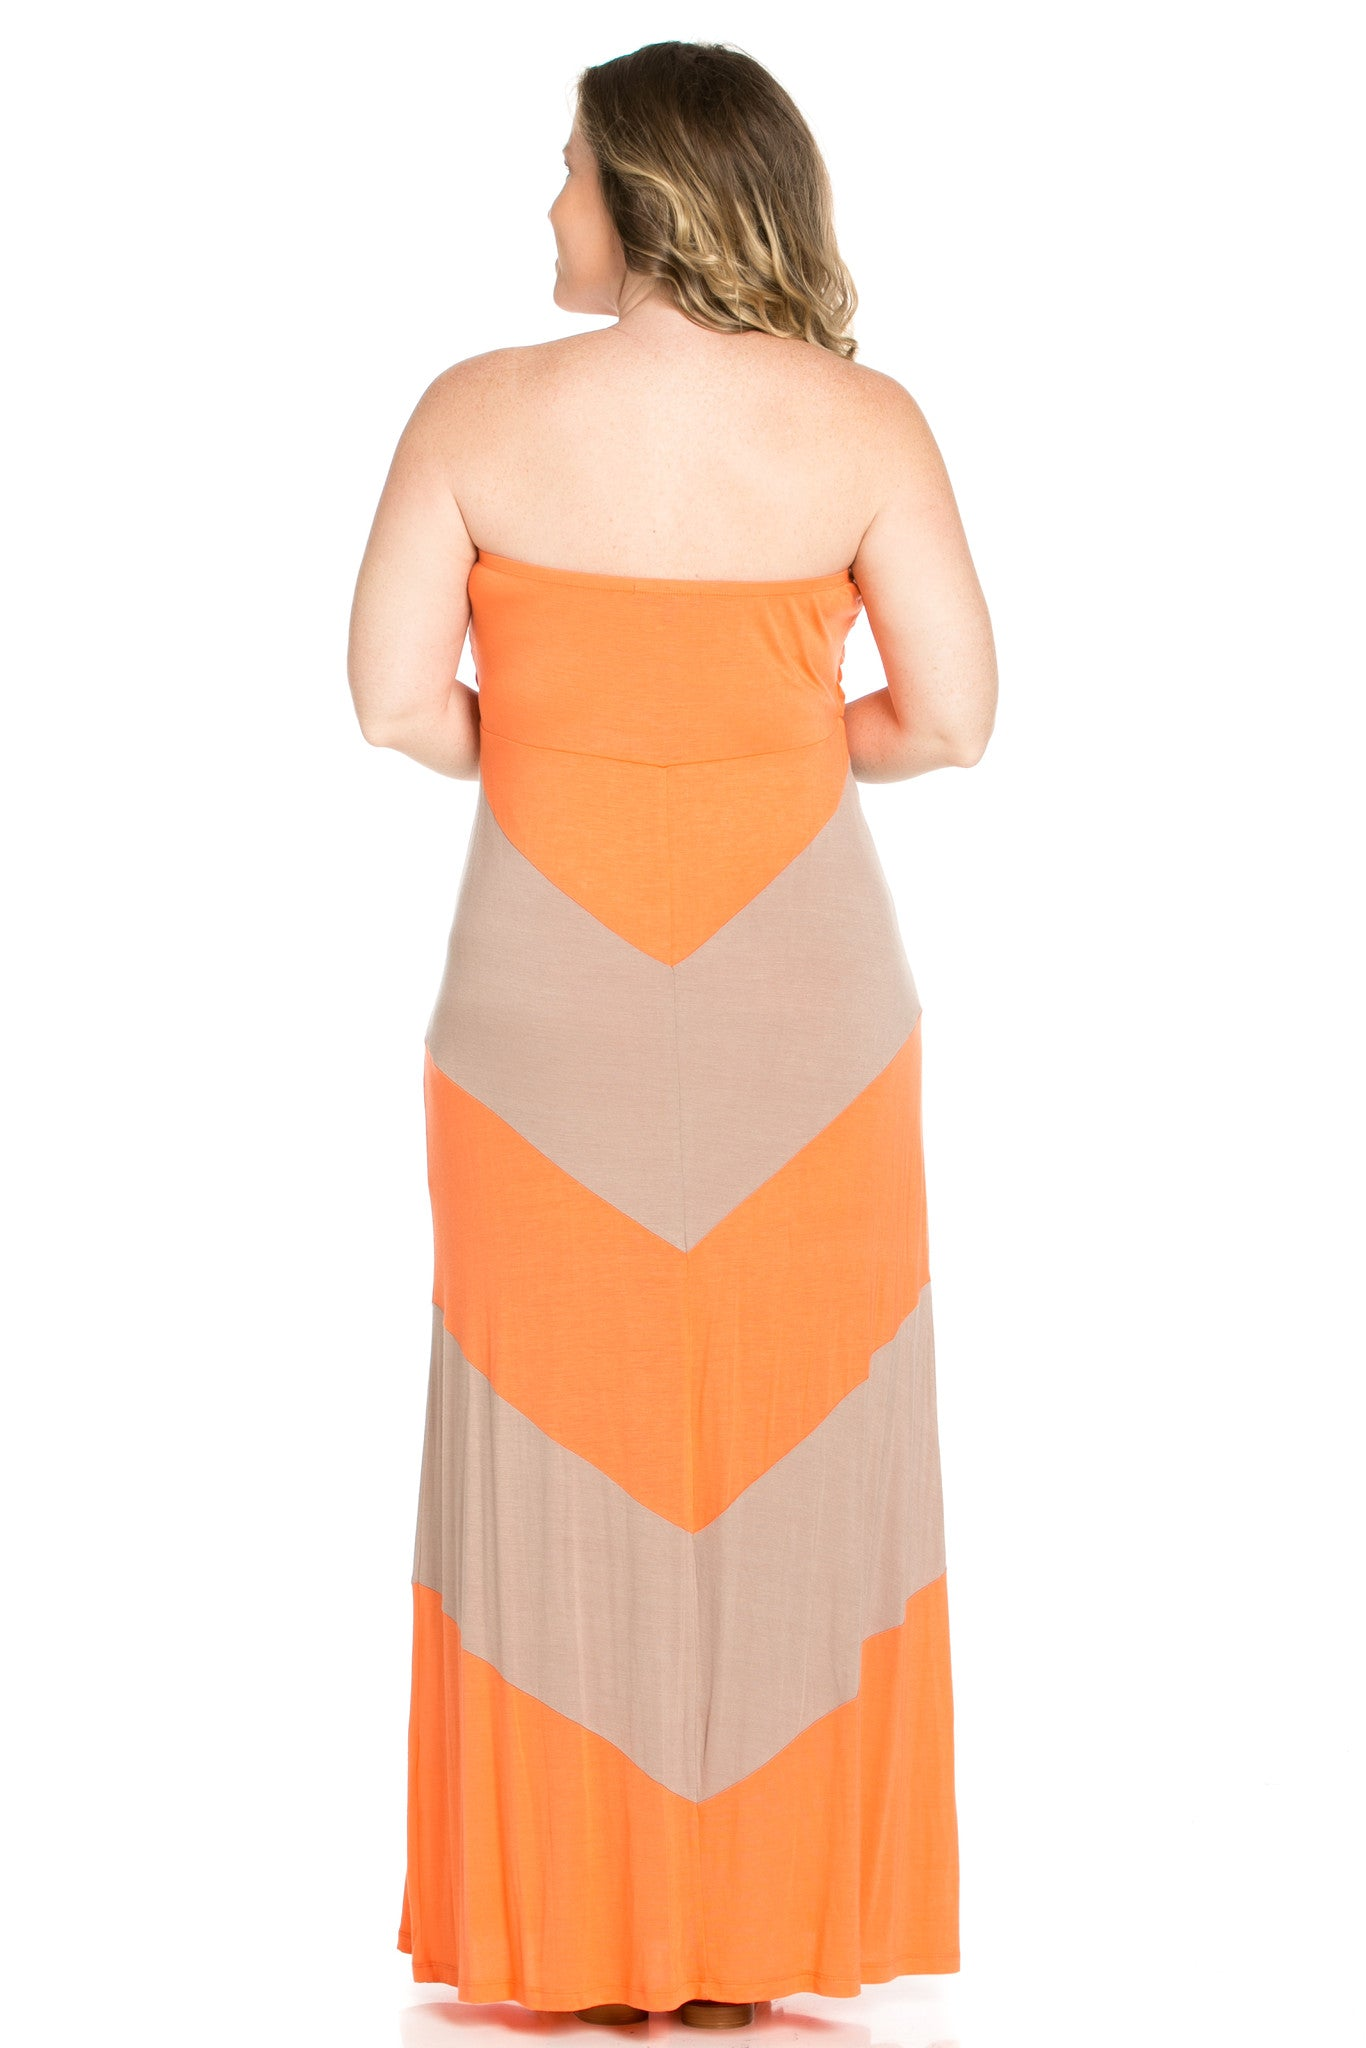 Strapless Long tube Dress Peach/Mocha Cause You're Chevron - Dresses - My Yuccie - 4